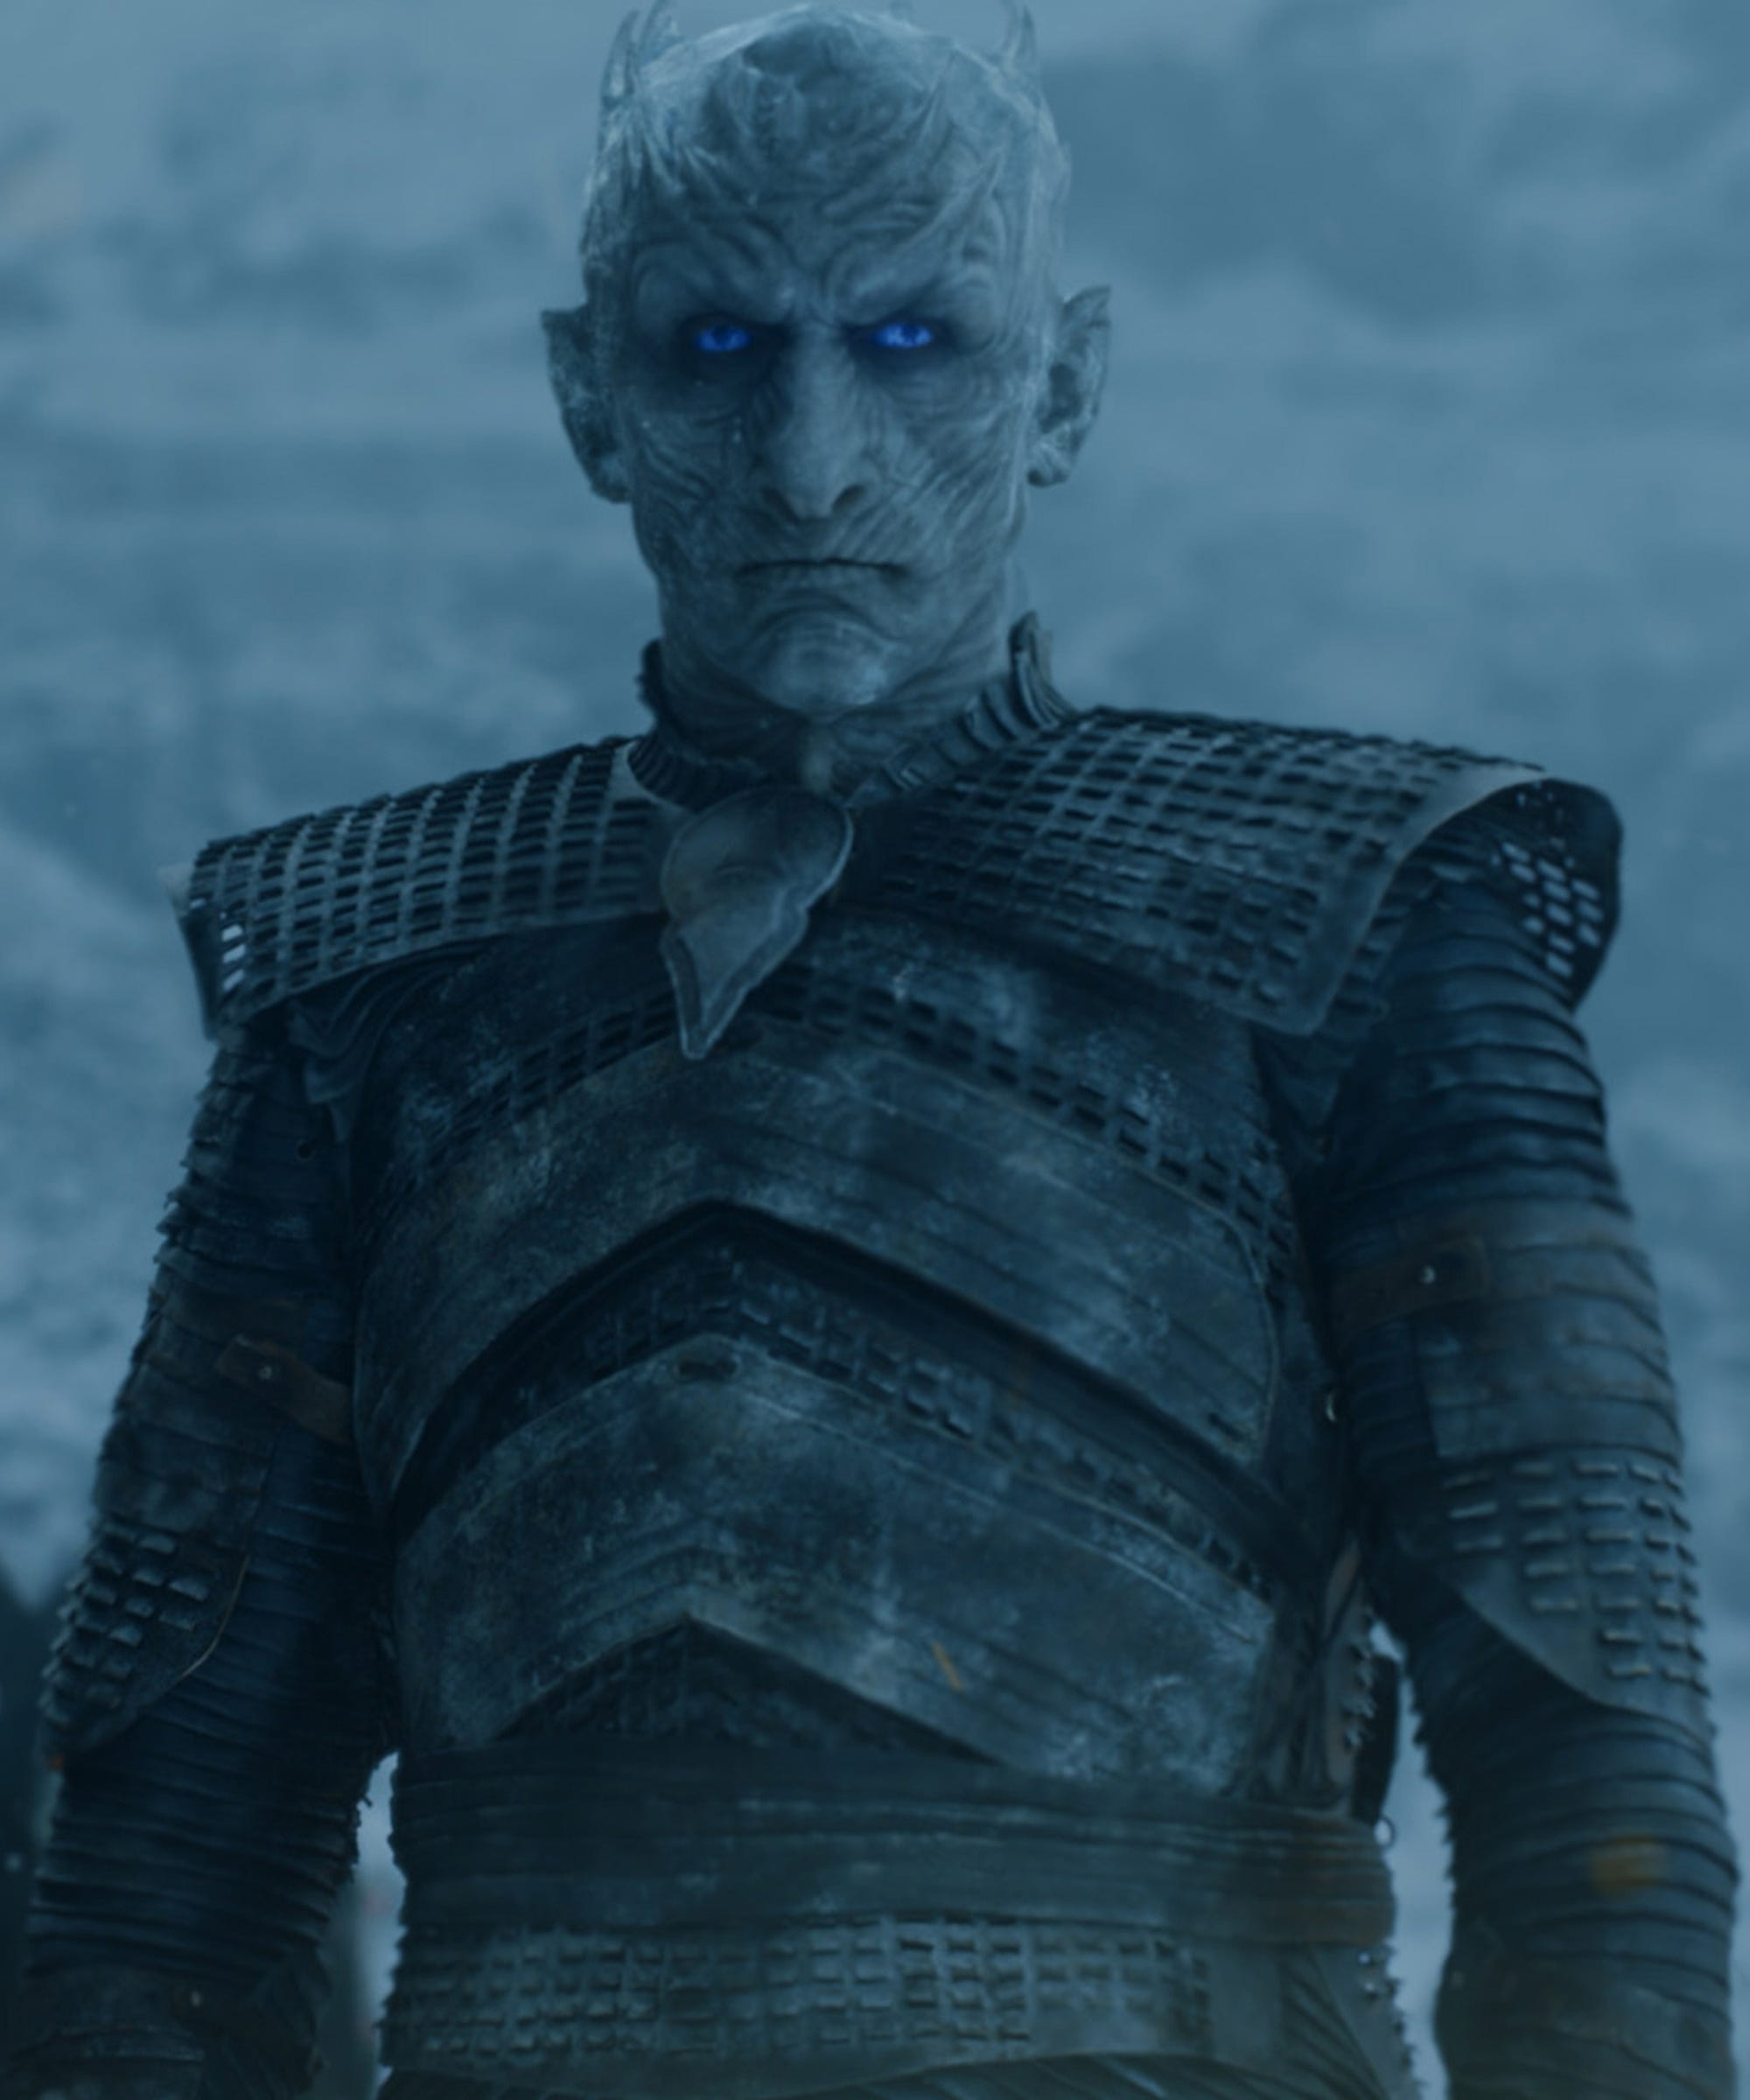 Ahead Of Game Of Thrones' Biggest Battle, This Is Exactly What The Night King Wants